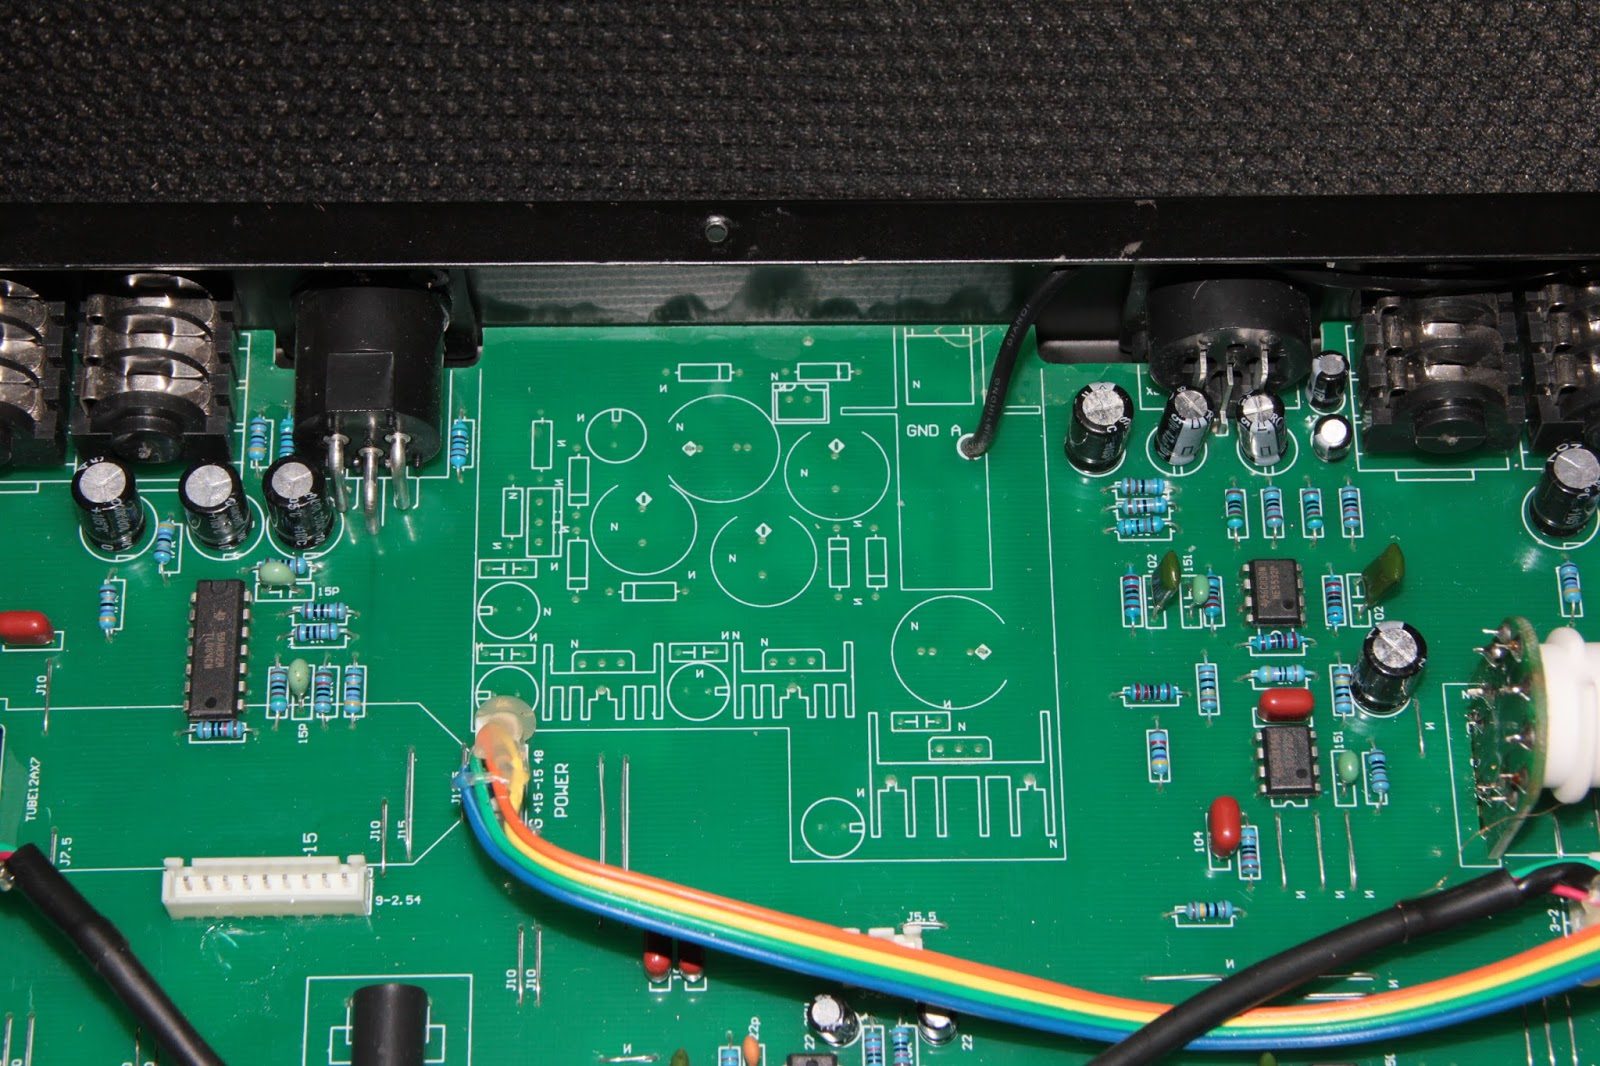 Khrons Cave 21 Sm Pro Audio Tb202 Dual Tube Preamp Channel Ne5532 Subwoofer Processing Circuit Low Pass Filter Board Or They Just Couldnt Be Bothered To Remove The Unused Components From Design All Seemed Marked With An N And No Values Printed